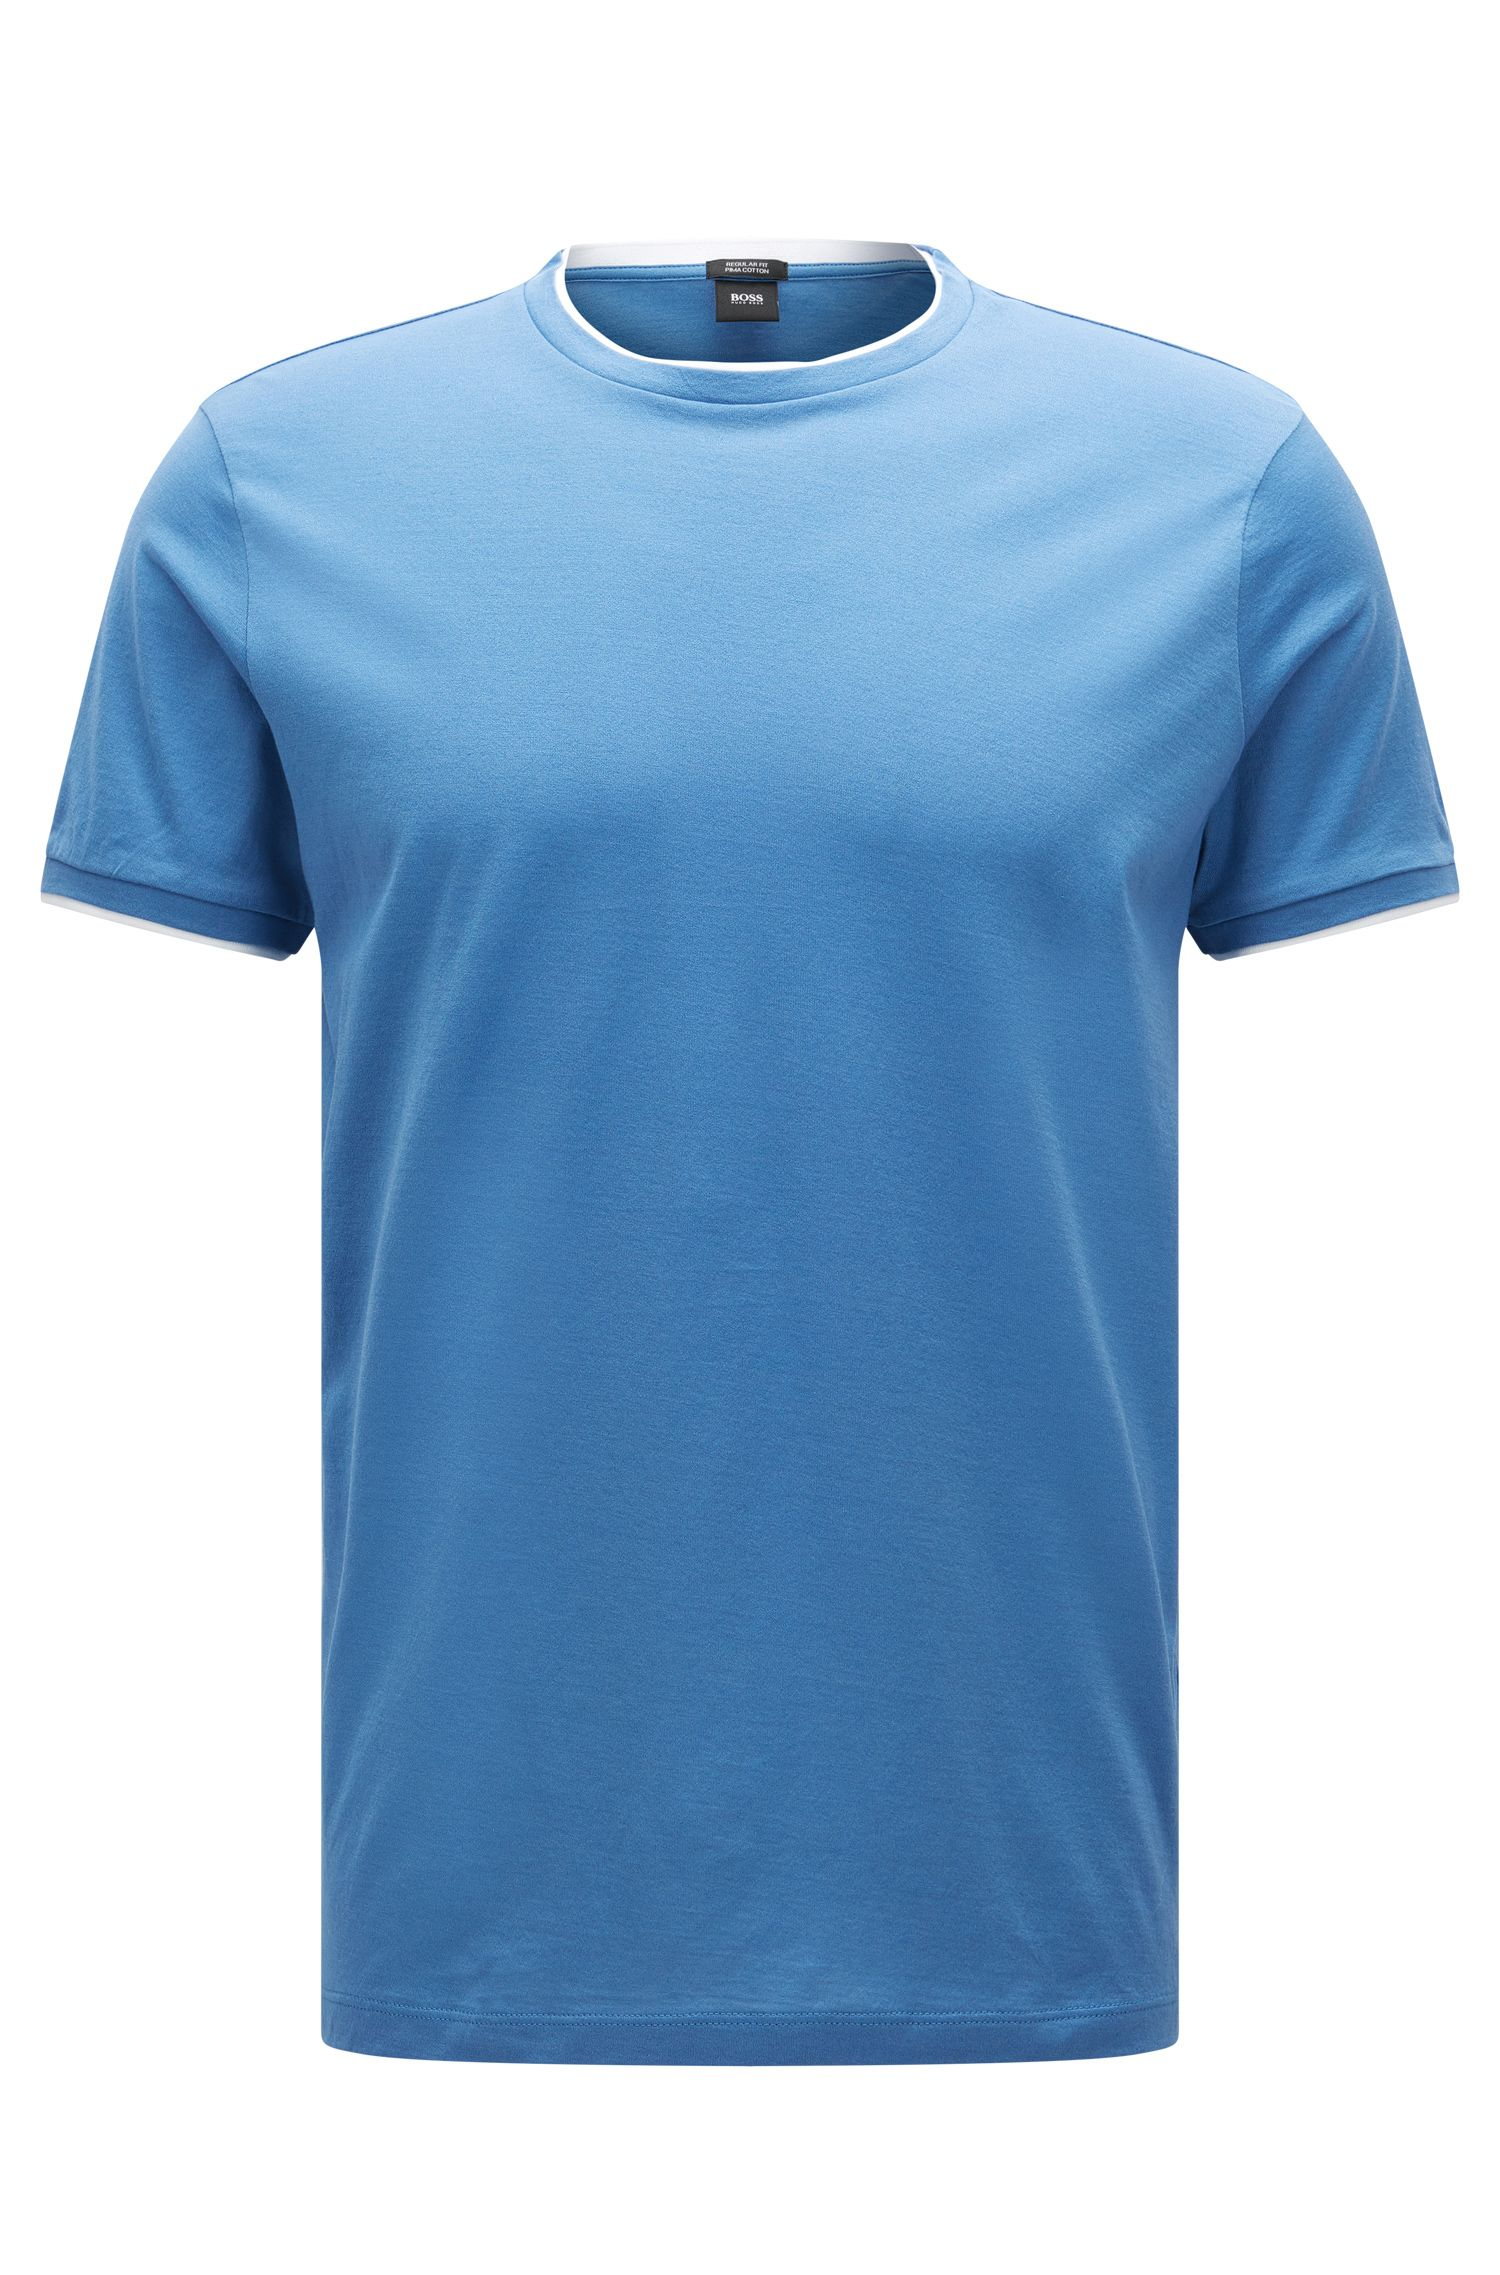 Pima Cotton T-Shirt | Taber, Open Blue